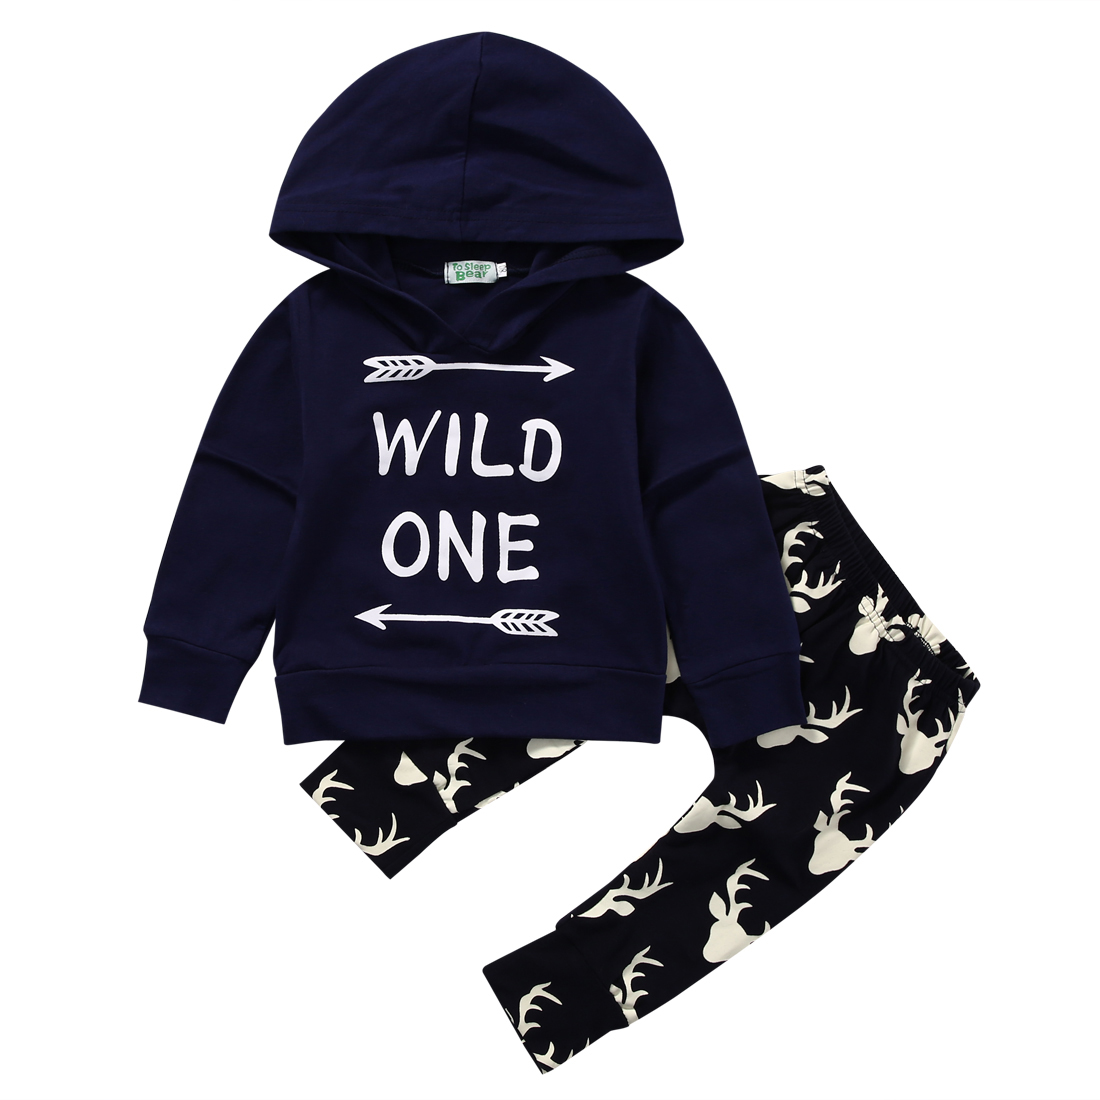 2PCS Set Baby Clothes Infant Newborn Bebes Long Sleeve Hooded Sweatshirt Wild One Tops + Deer Pant Trouser Outfit Kids Clothing infant newborn baby girls clothes set hooded tops long sleeve t shirt floral long leggings outfit children clothing autumn 2pcs